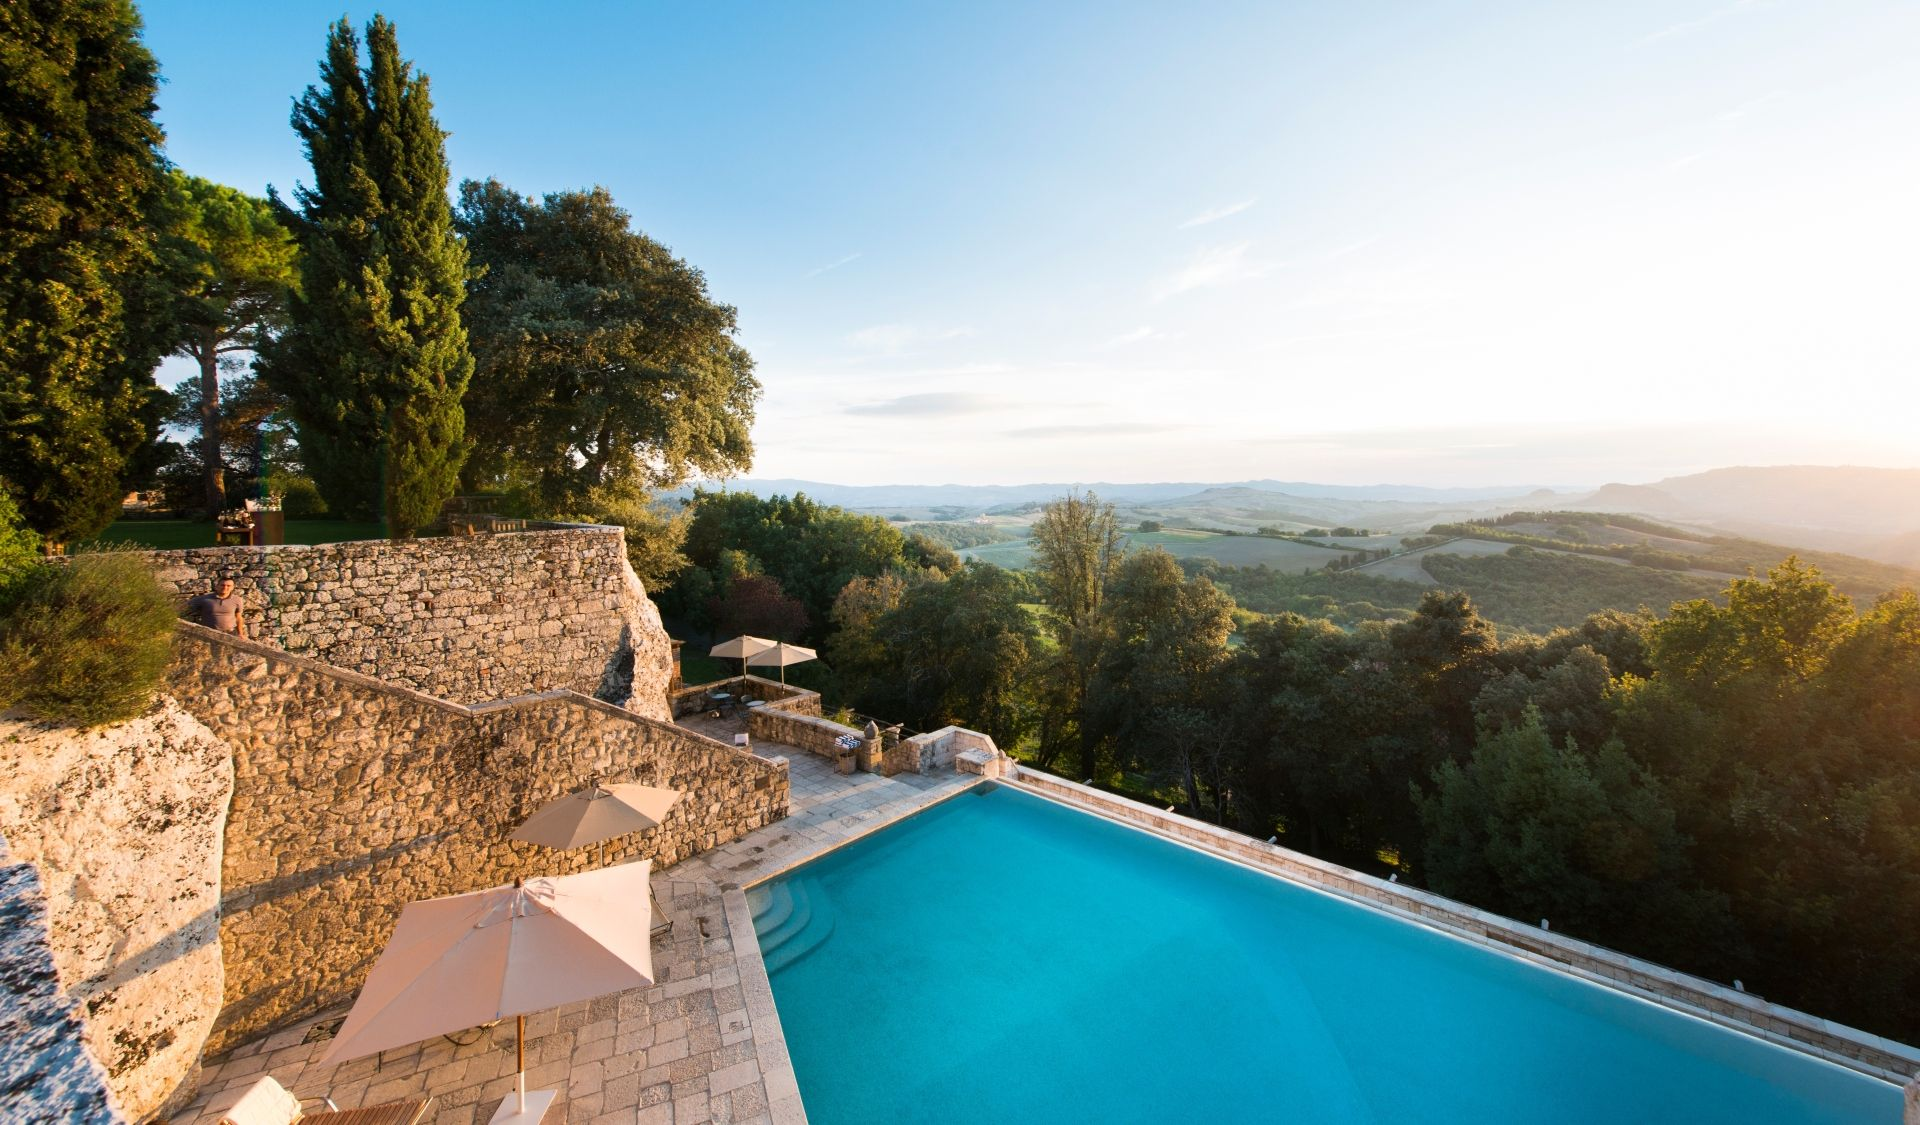 Main Pool View over the Tuscan hills